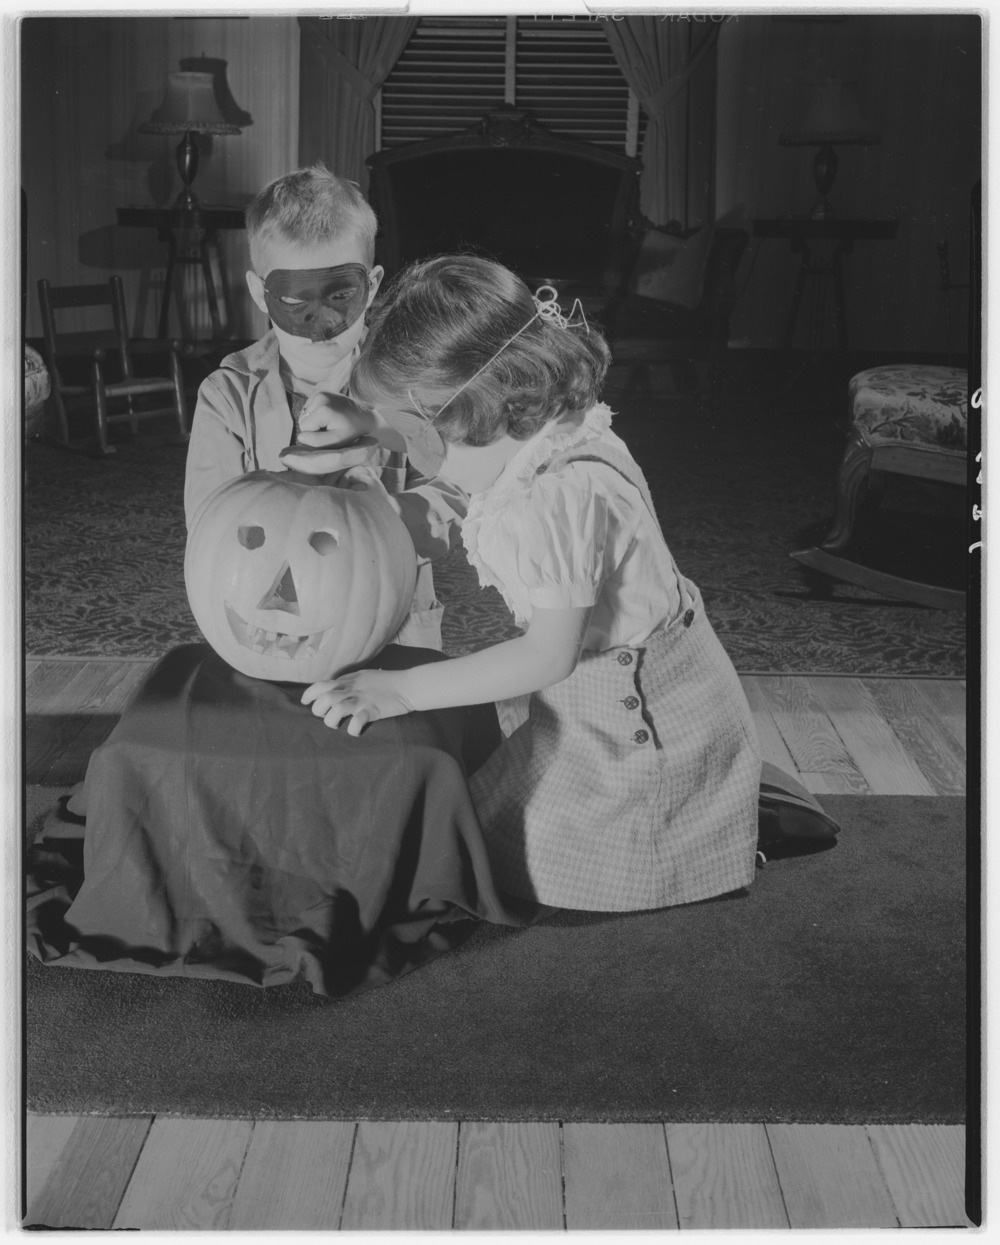 Kit Barrow and Betsy Speed with Halloween pumpkin.